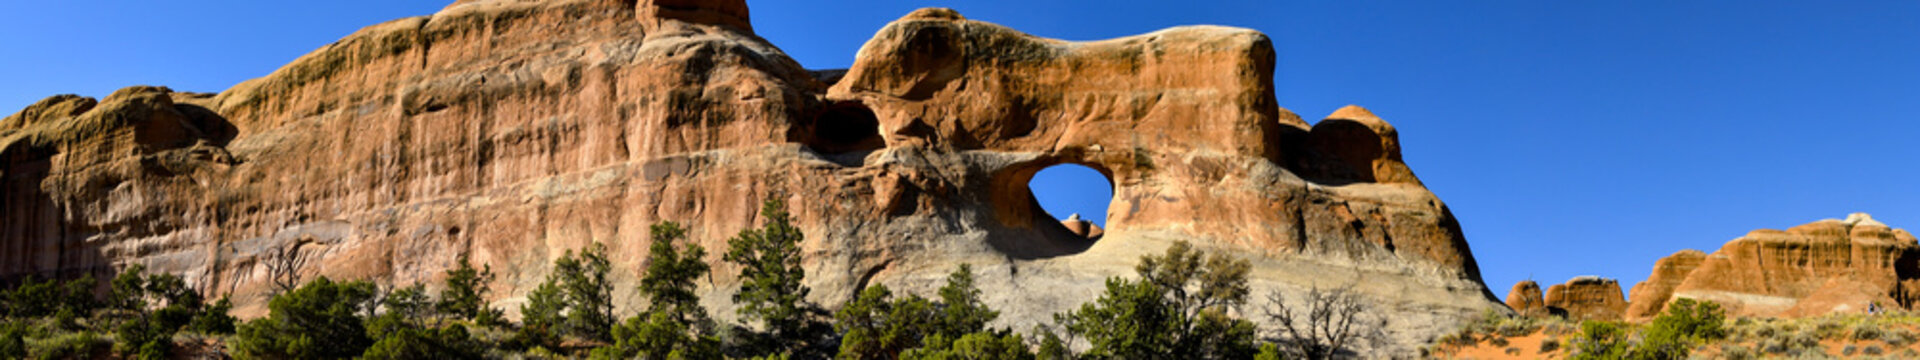 Web Banner of Arches National Park